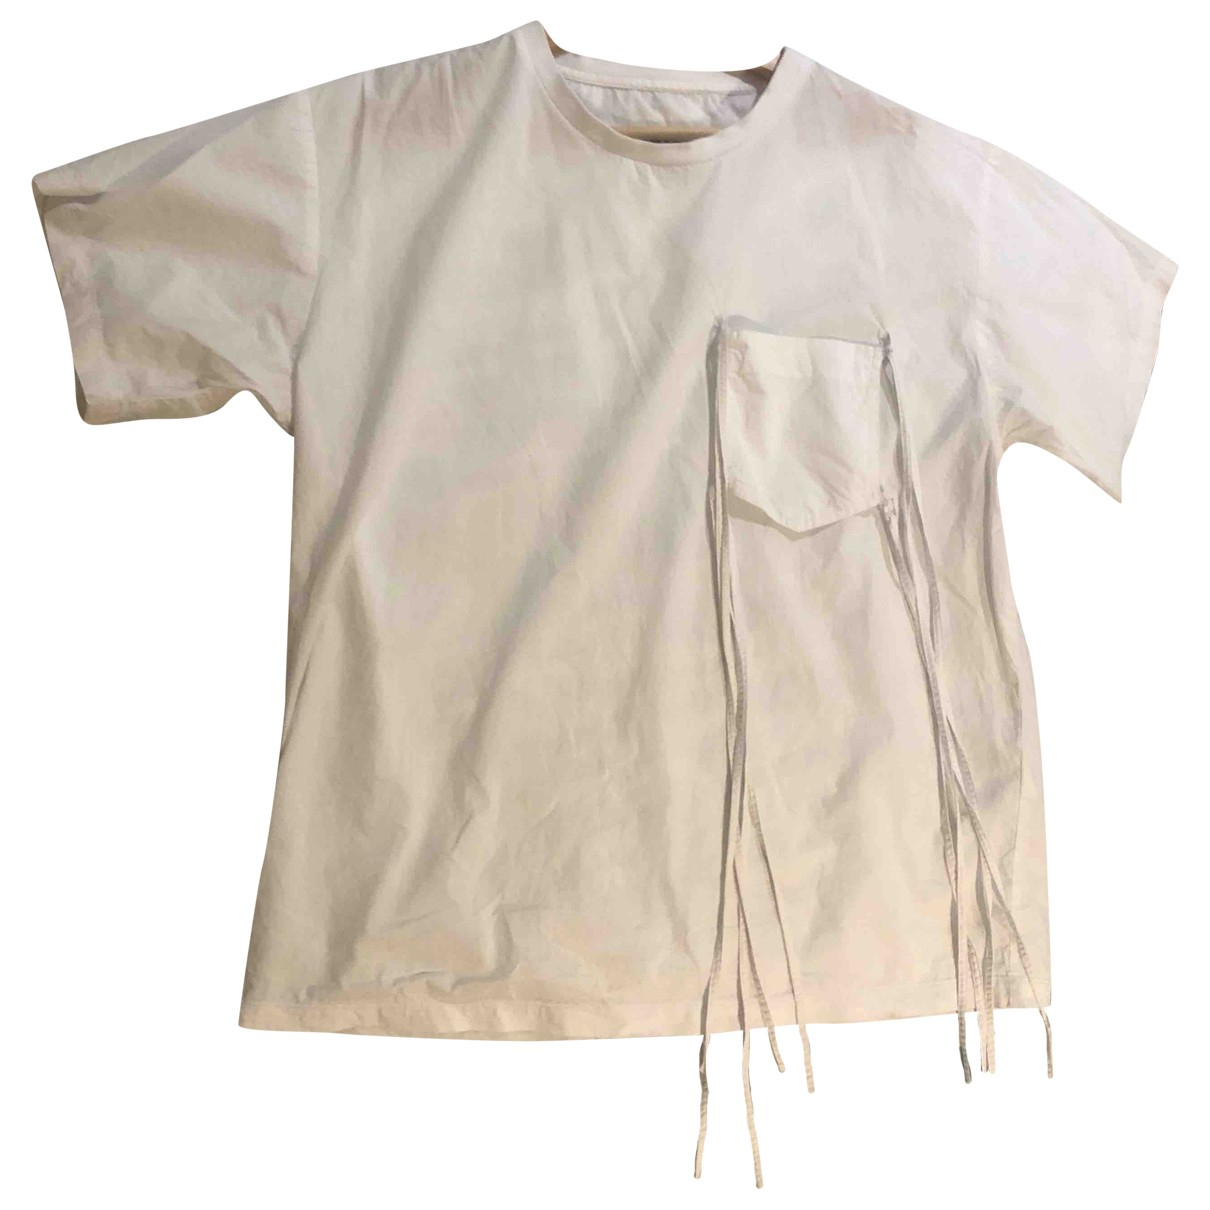 Mm6 \N White Cotton  top for Women 38 FR